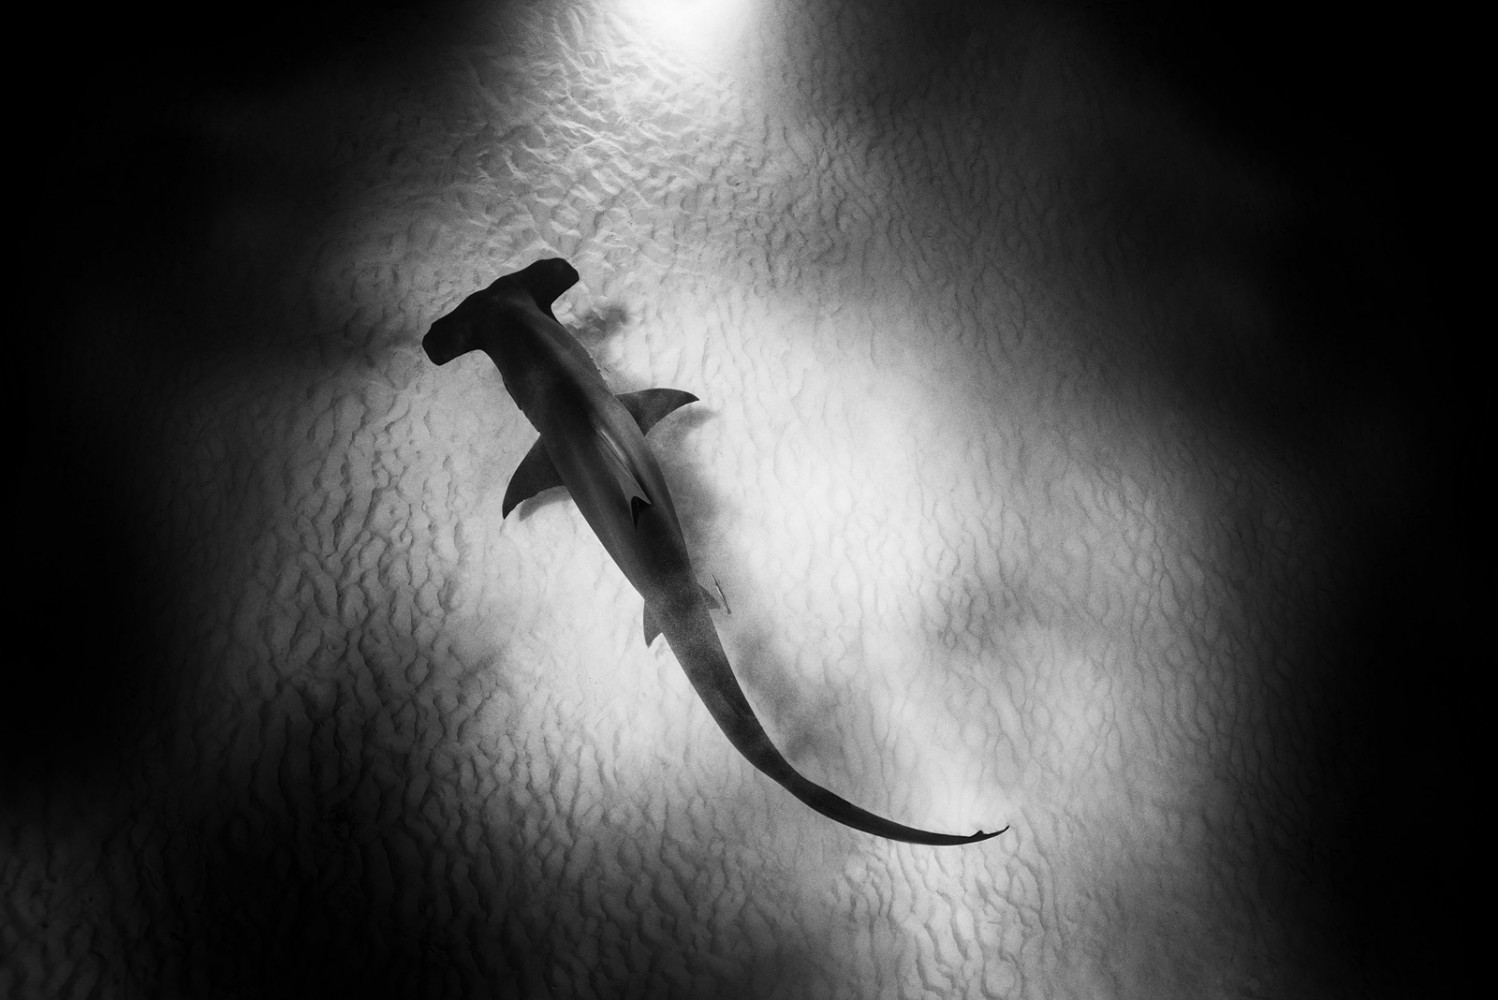 Michael Muller's POV from above these massive sharks